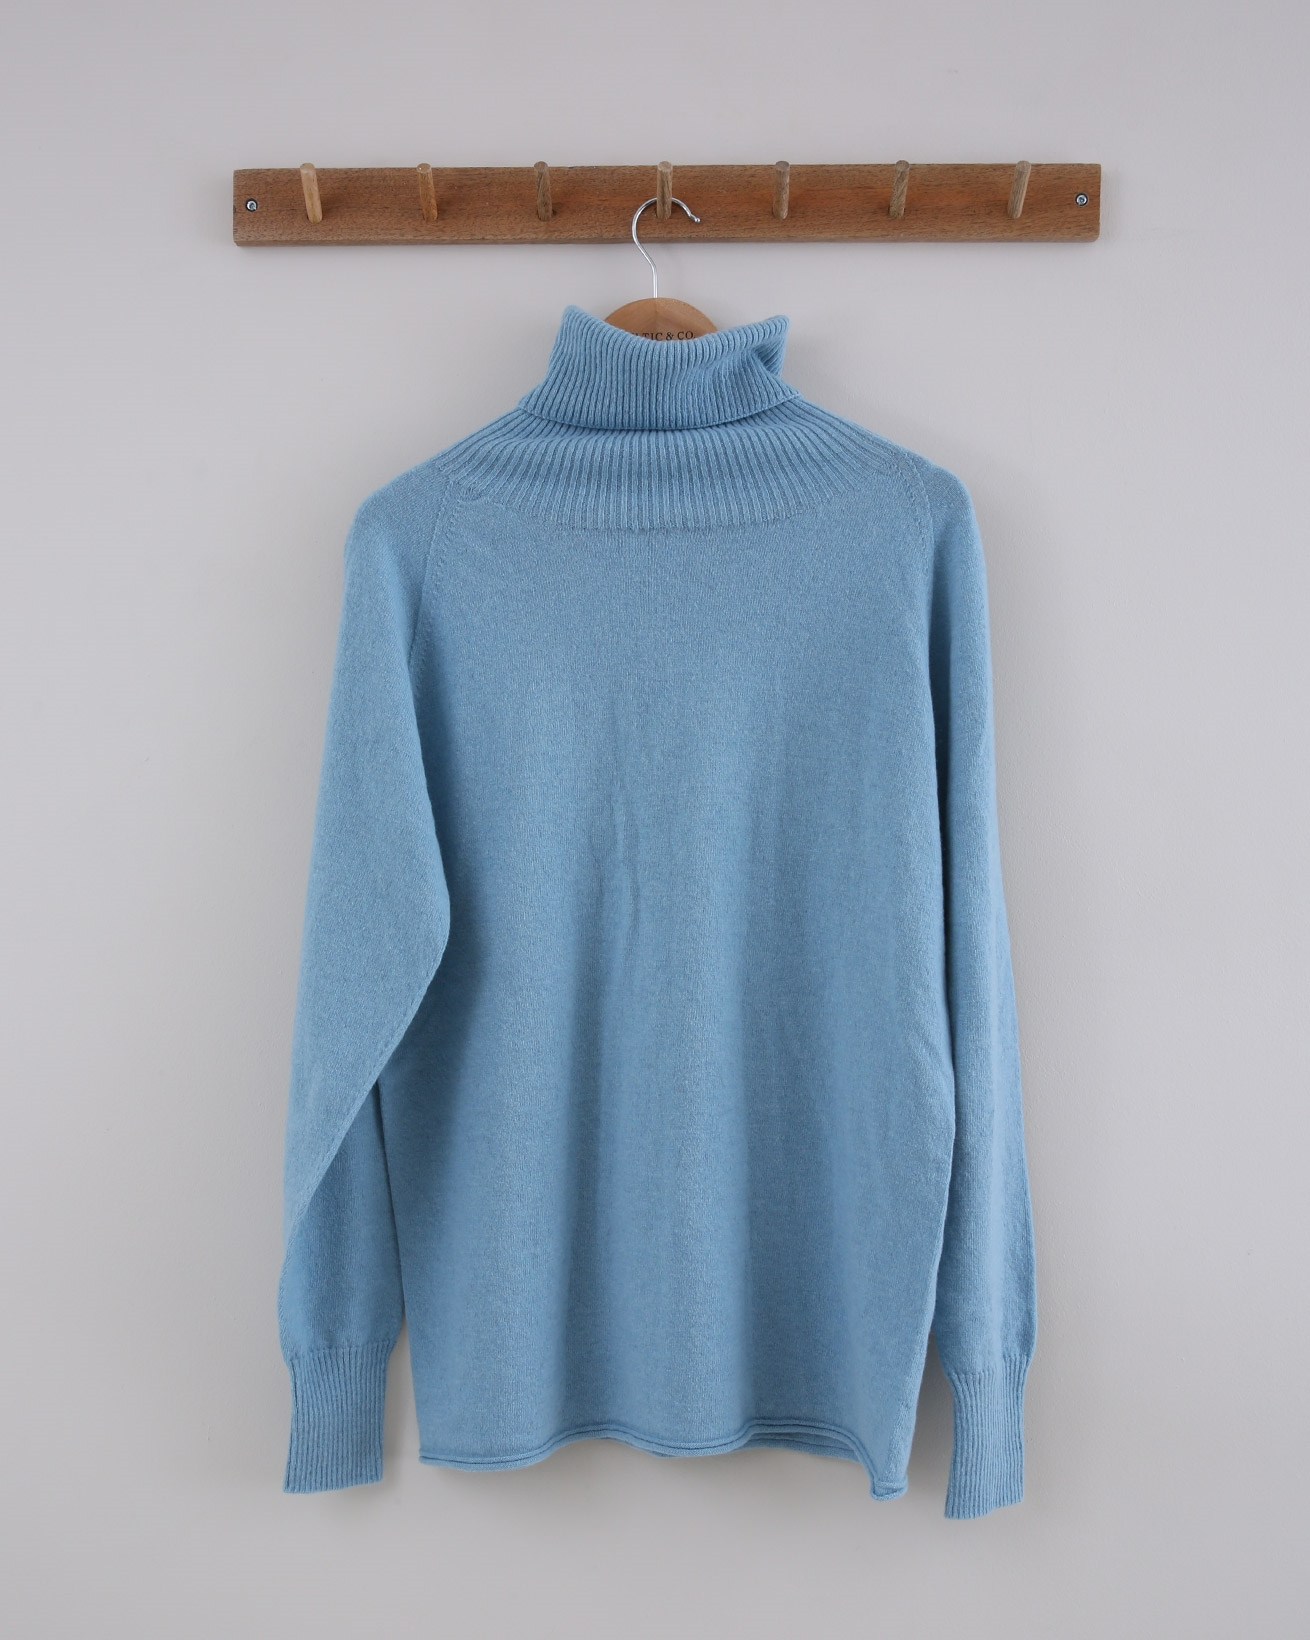 Geelong Slouch Roll Neck - Small - Vintage Blue - 1438